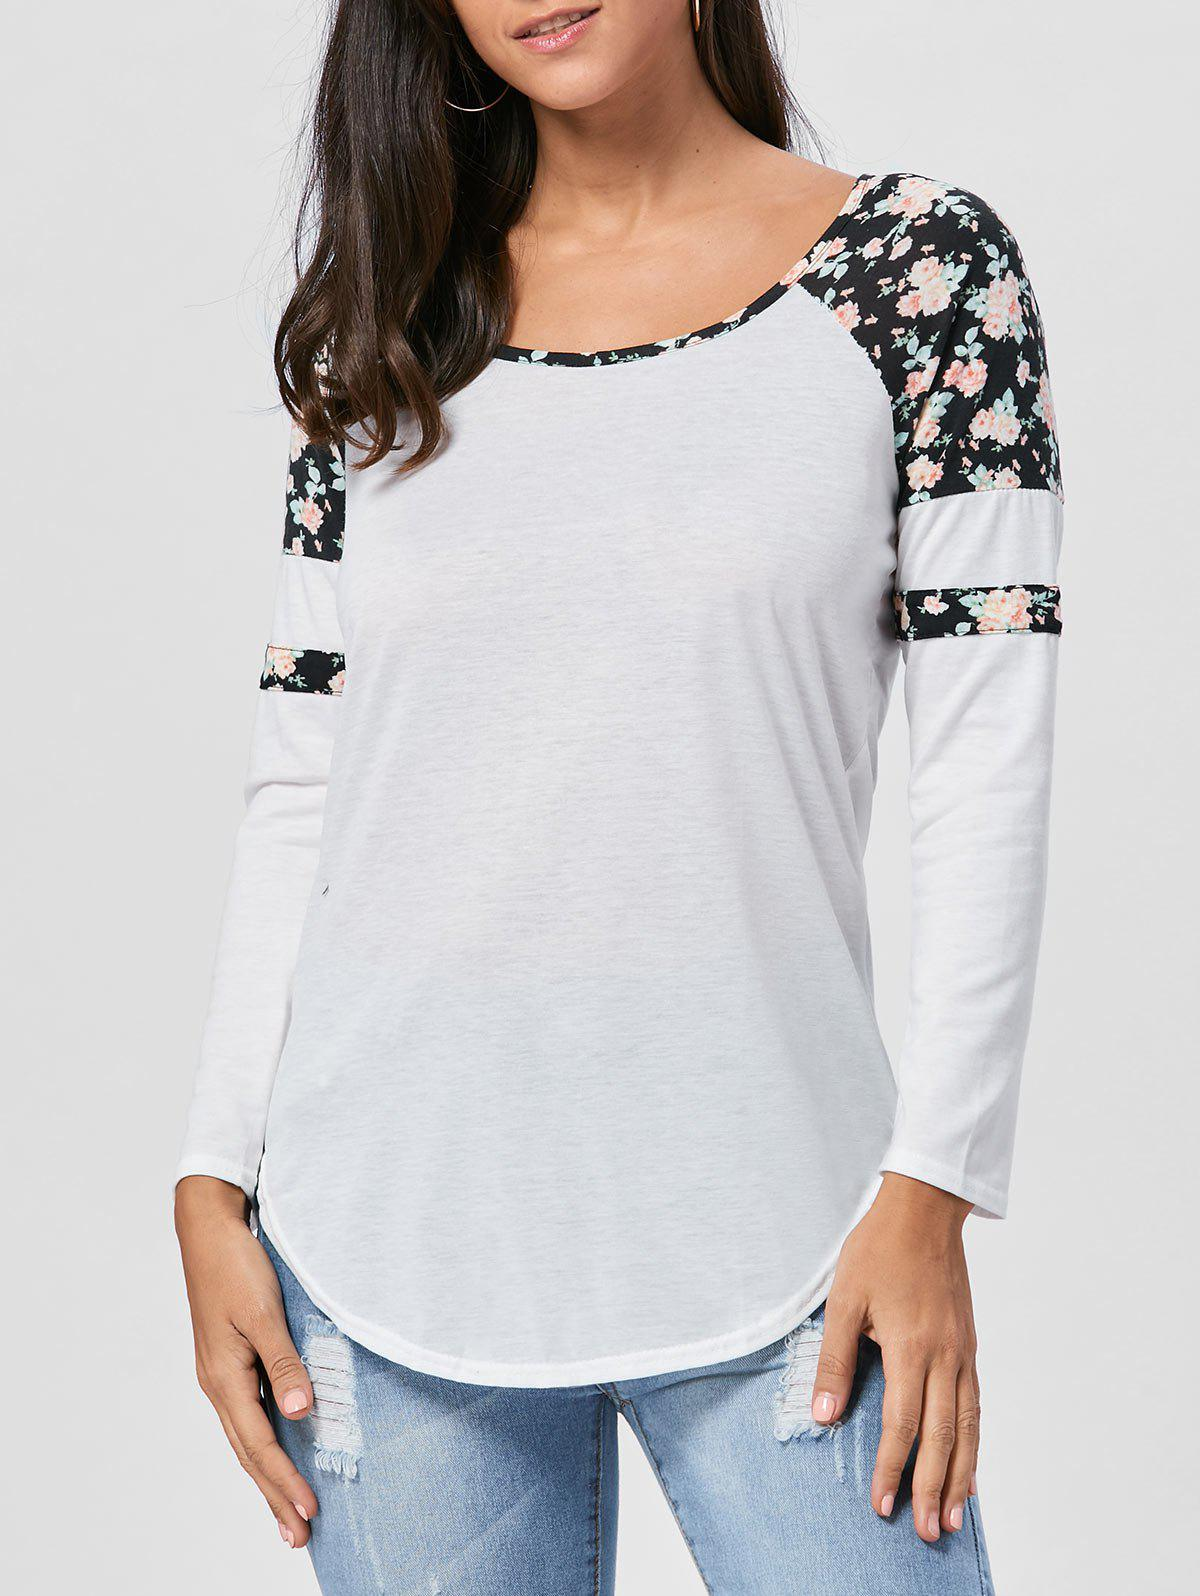 Floral Raglan Long Sleeve T-shirt - BLACK M